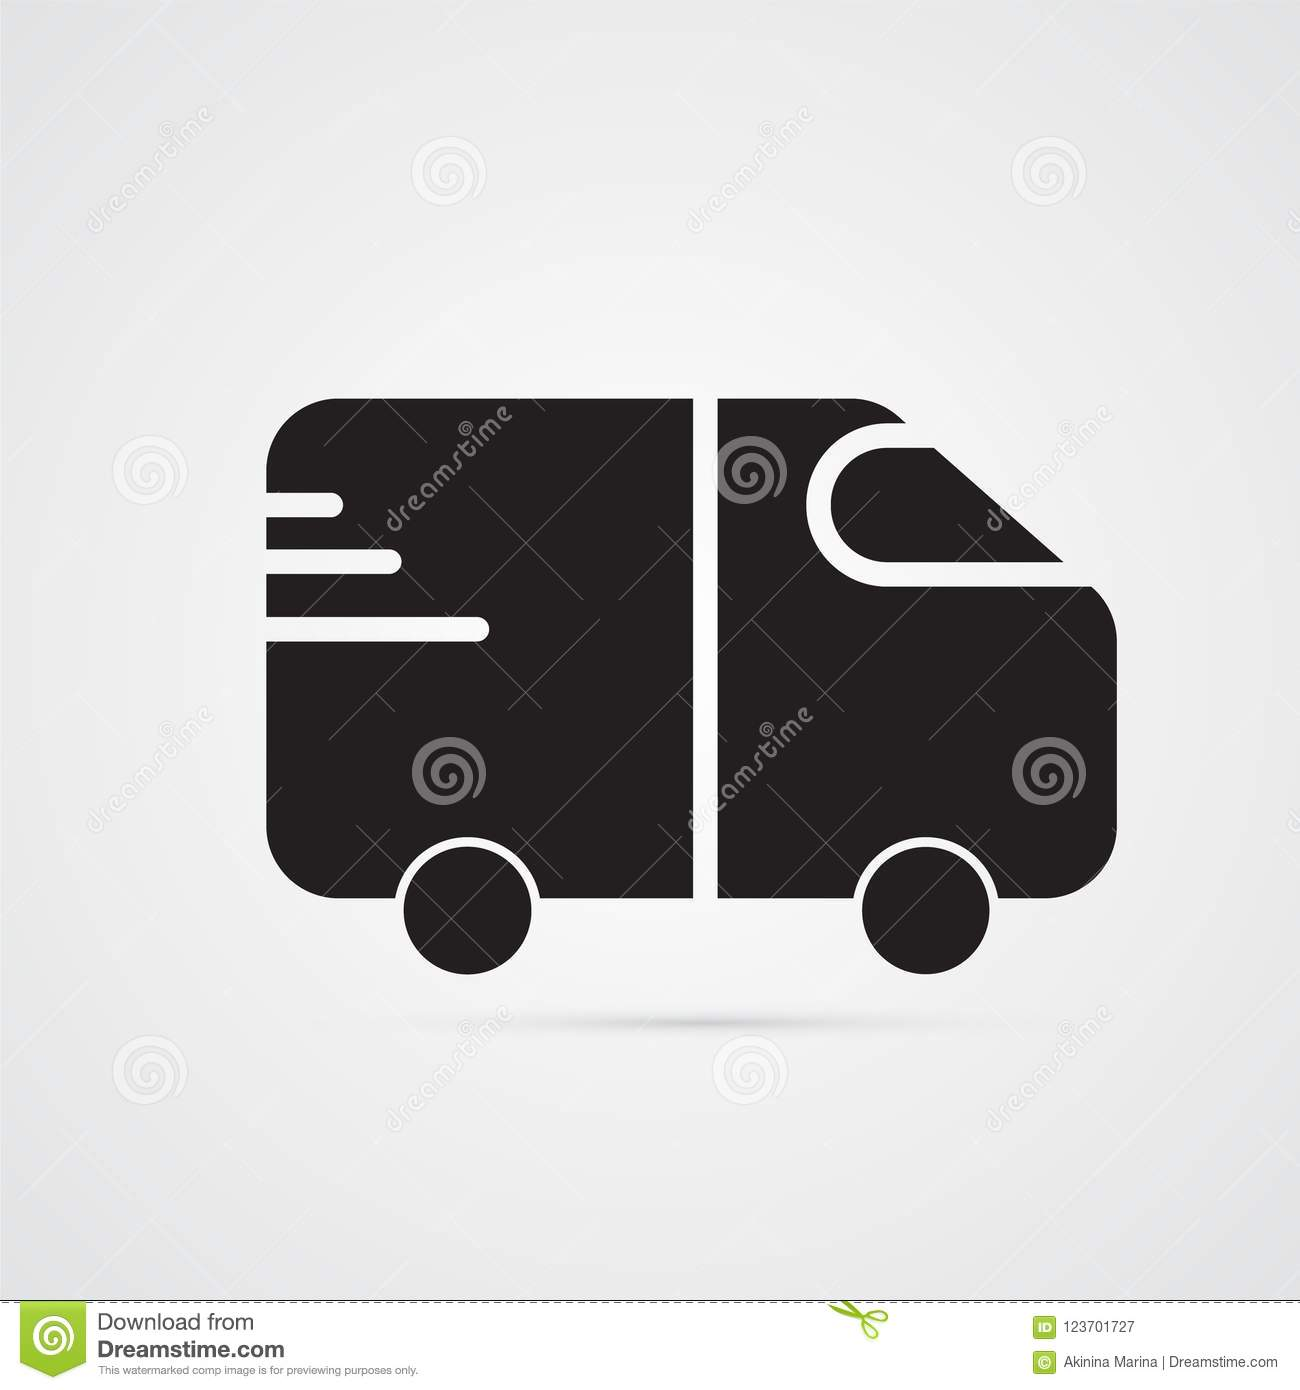 Car For Illustration Of Transport And Truck Symbol Of Delivery